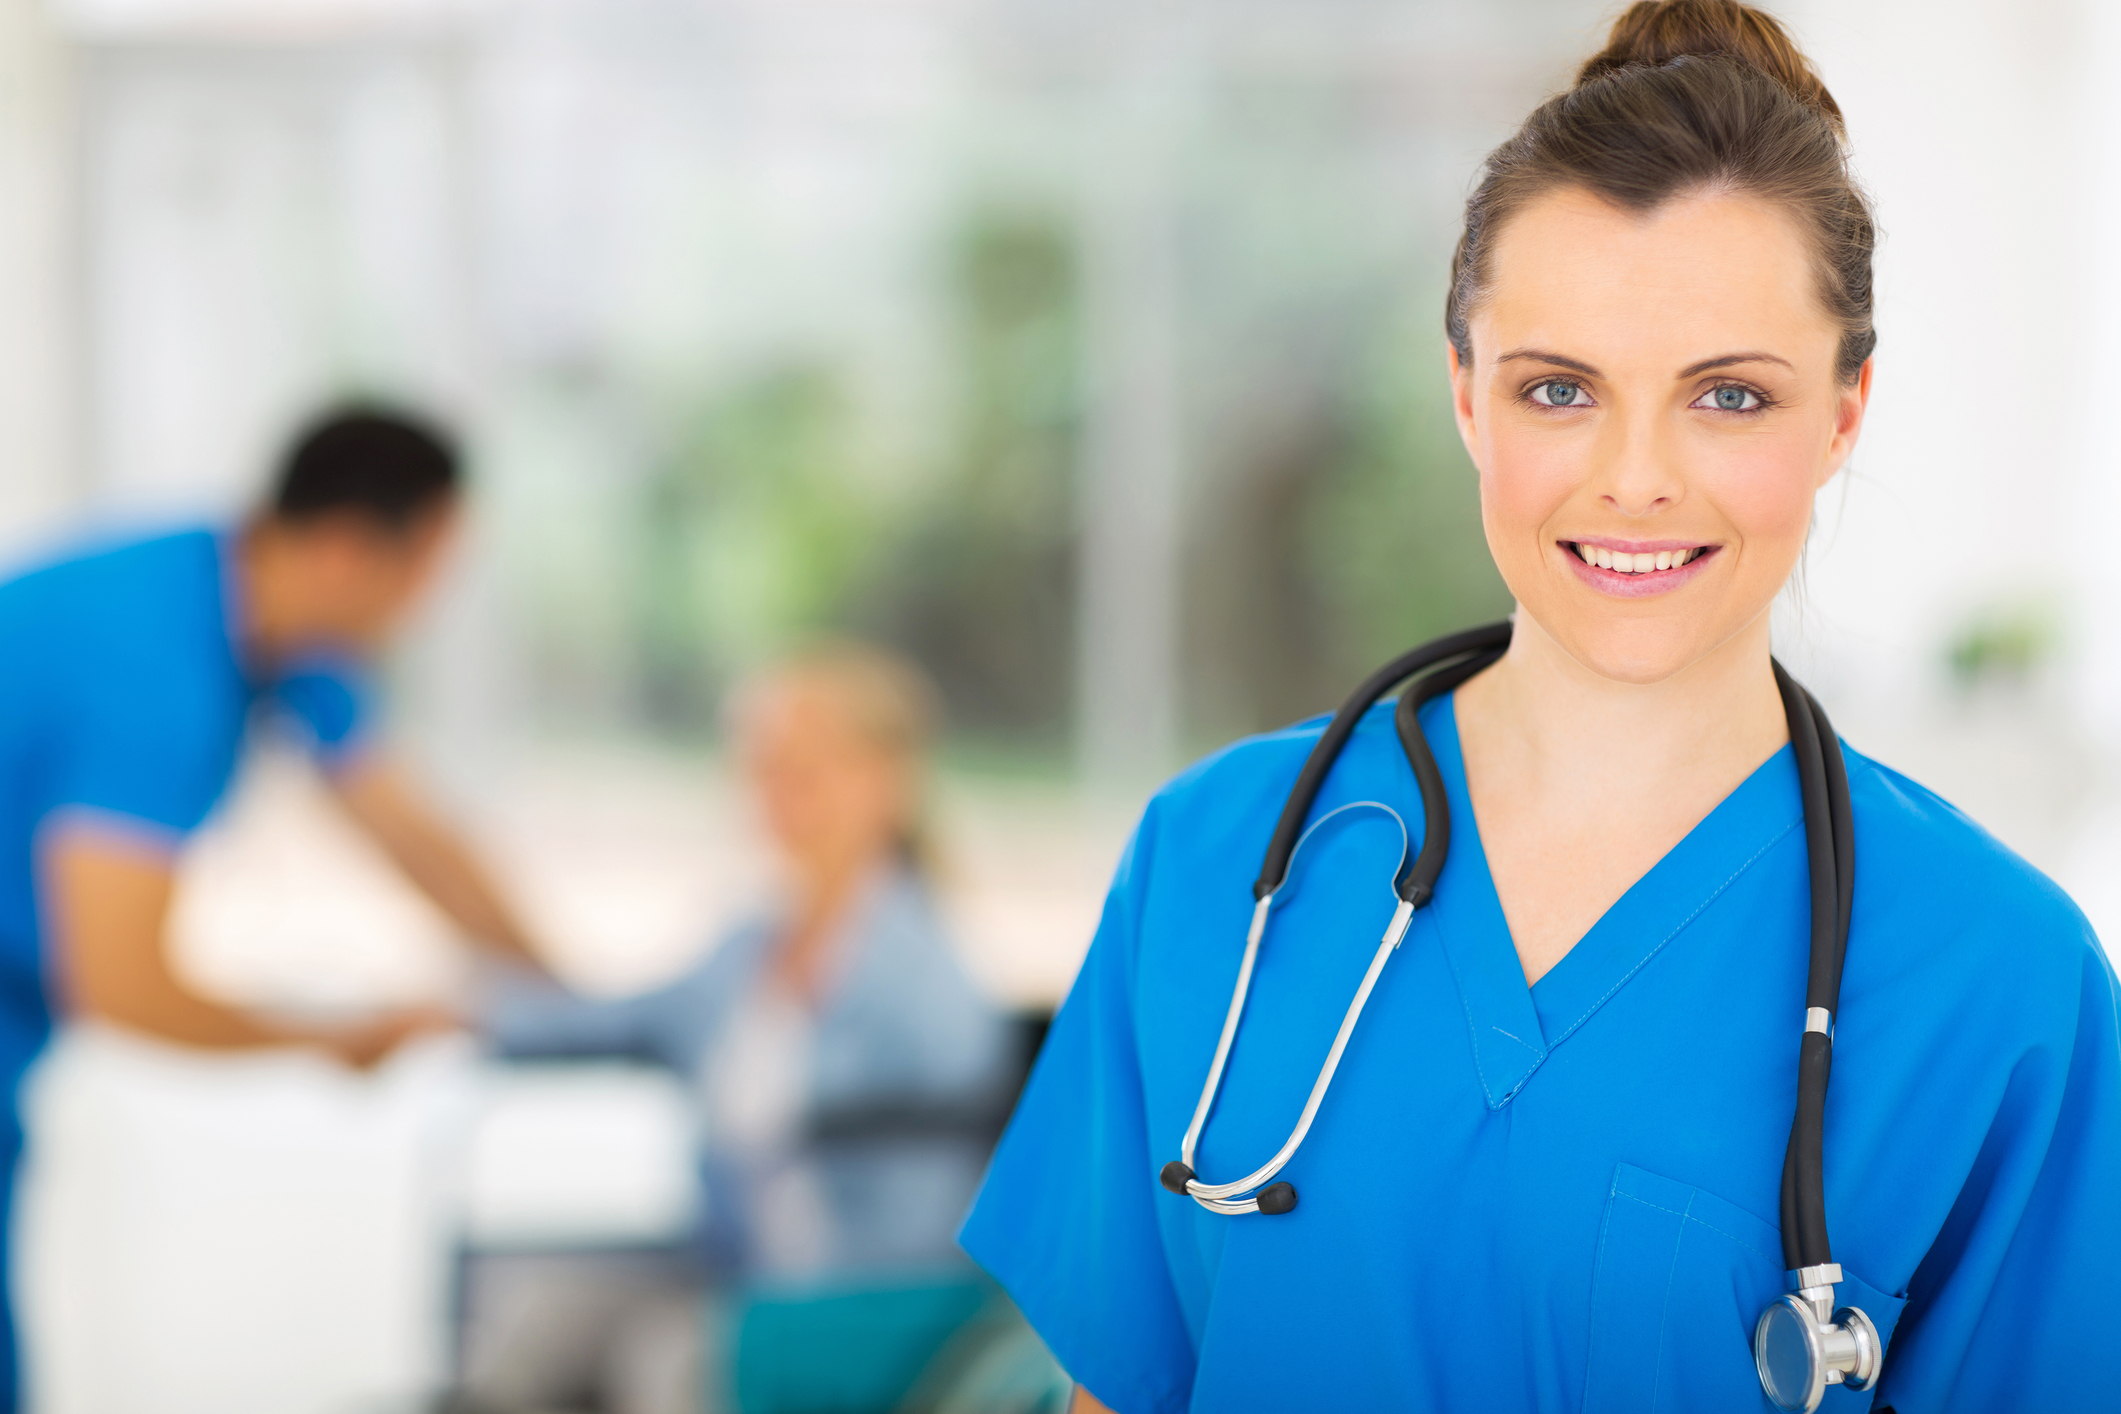 The 5 Best Stethoscopes for Nurses Reviews & Guide 2019